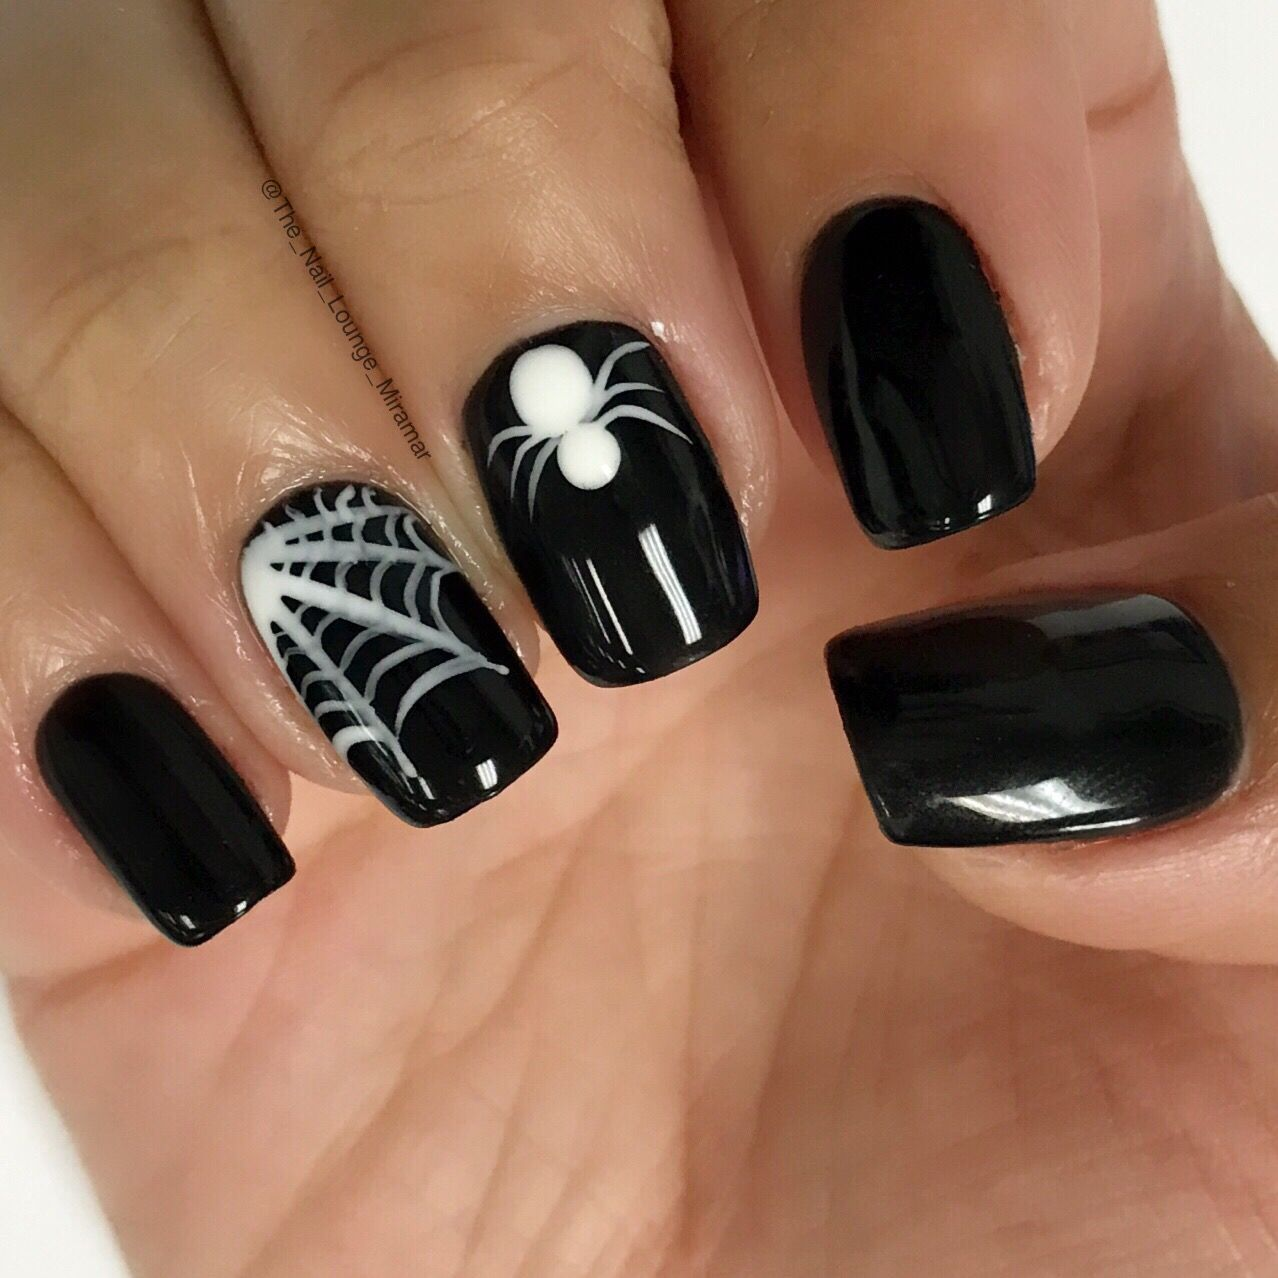 Spiderweb Halloween nail art design | Halloween nails easy ...